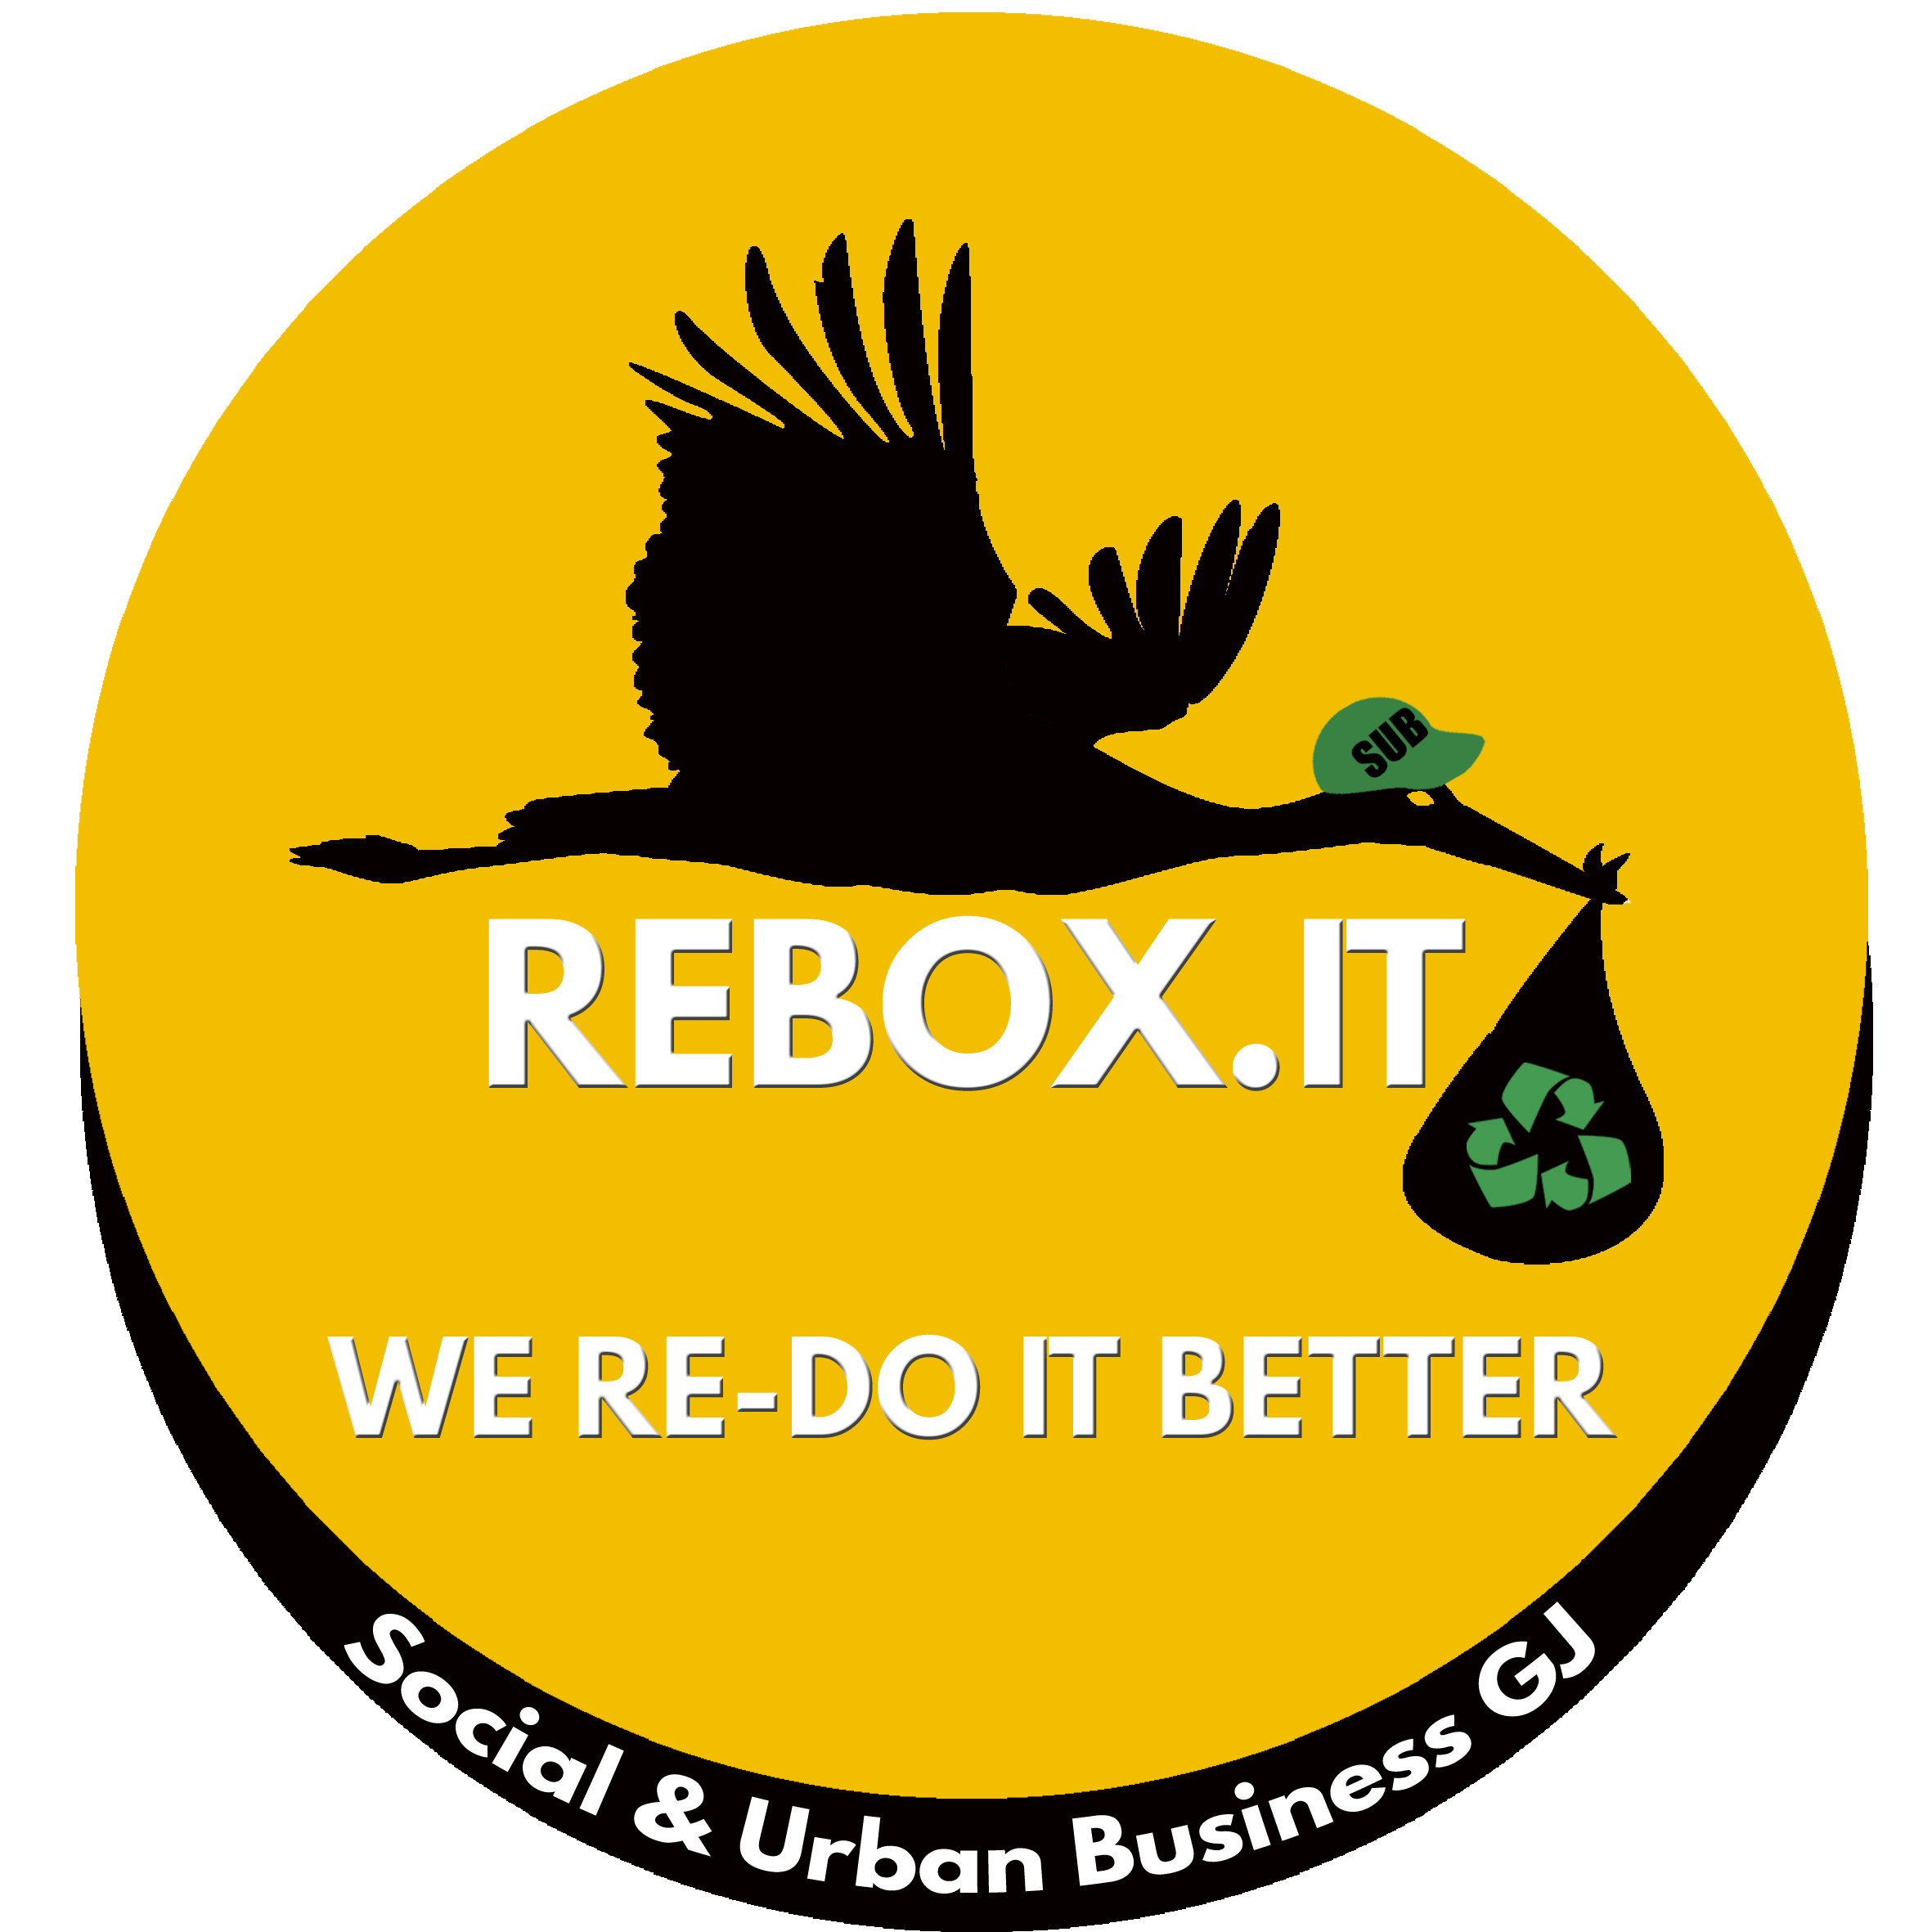 Social & Urban Business GJ